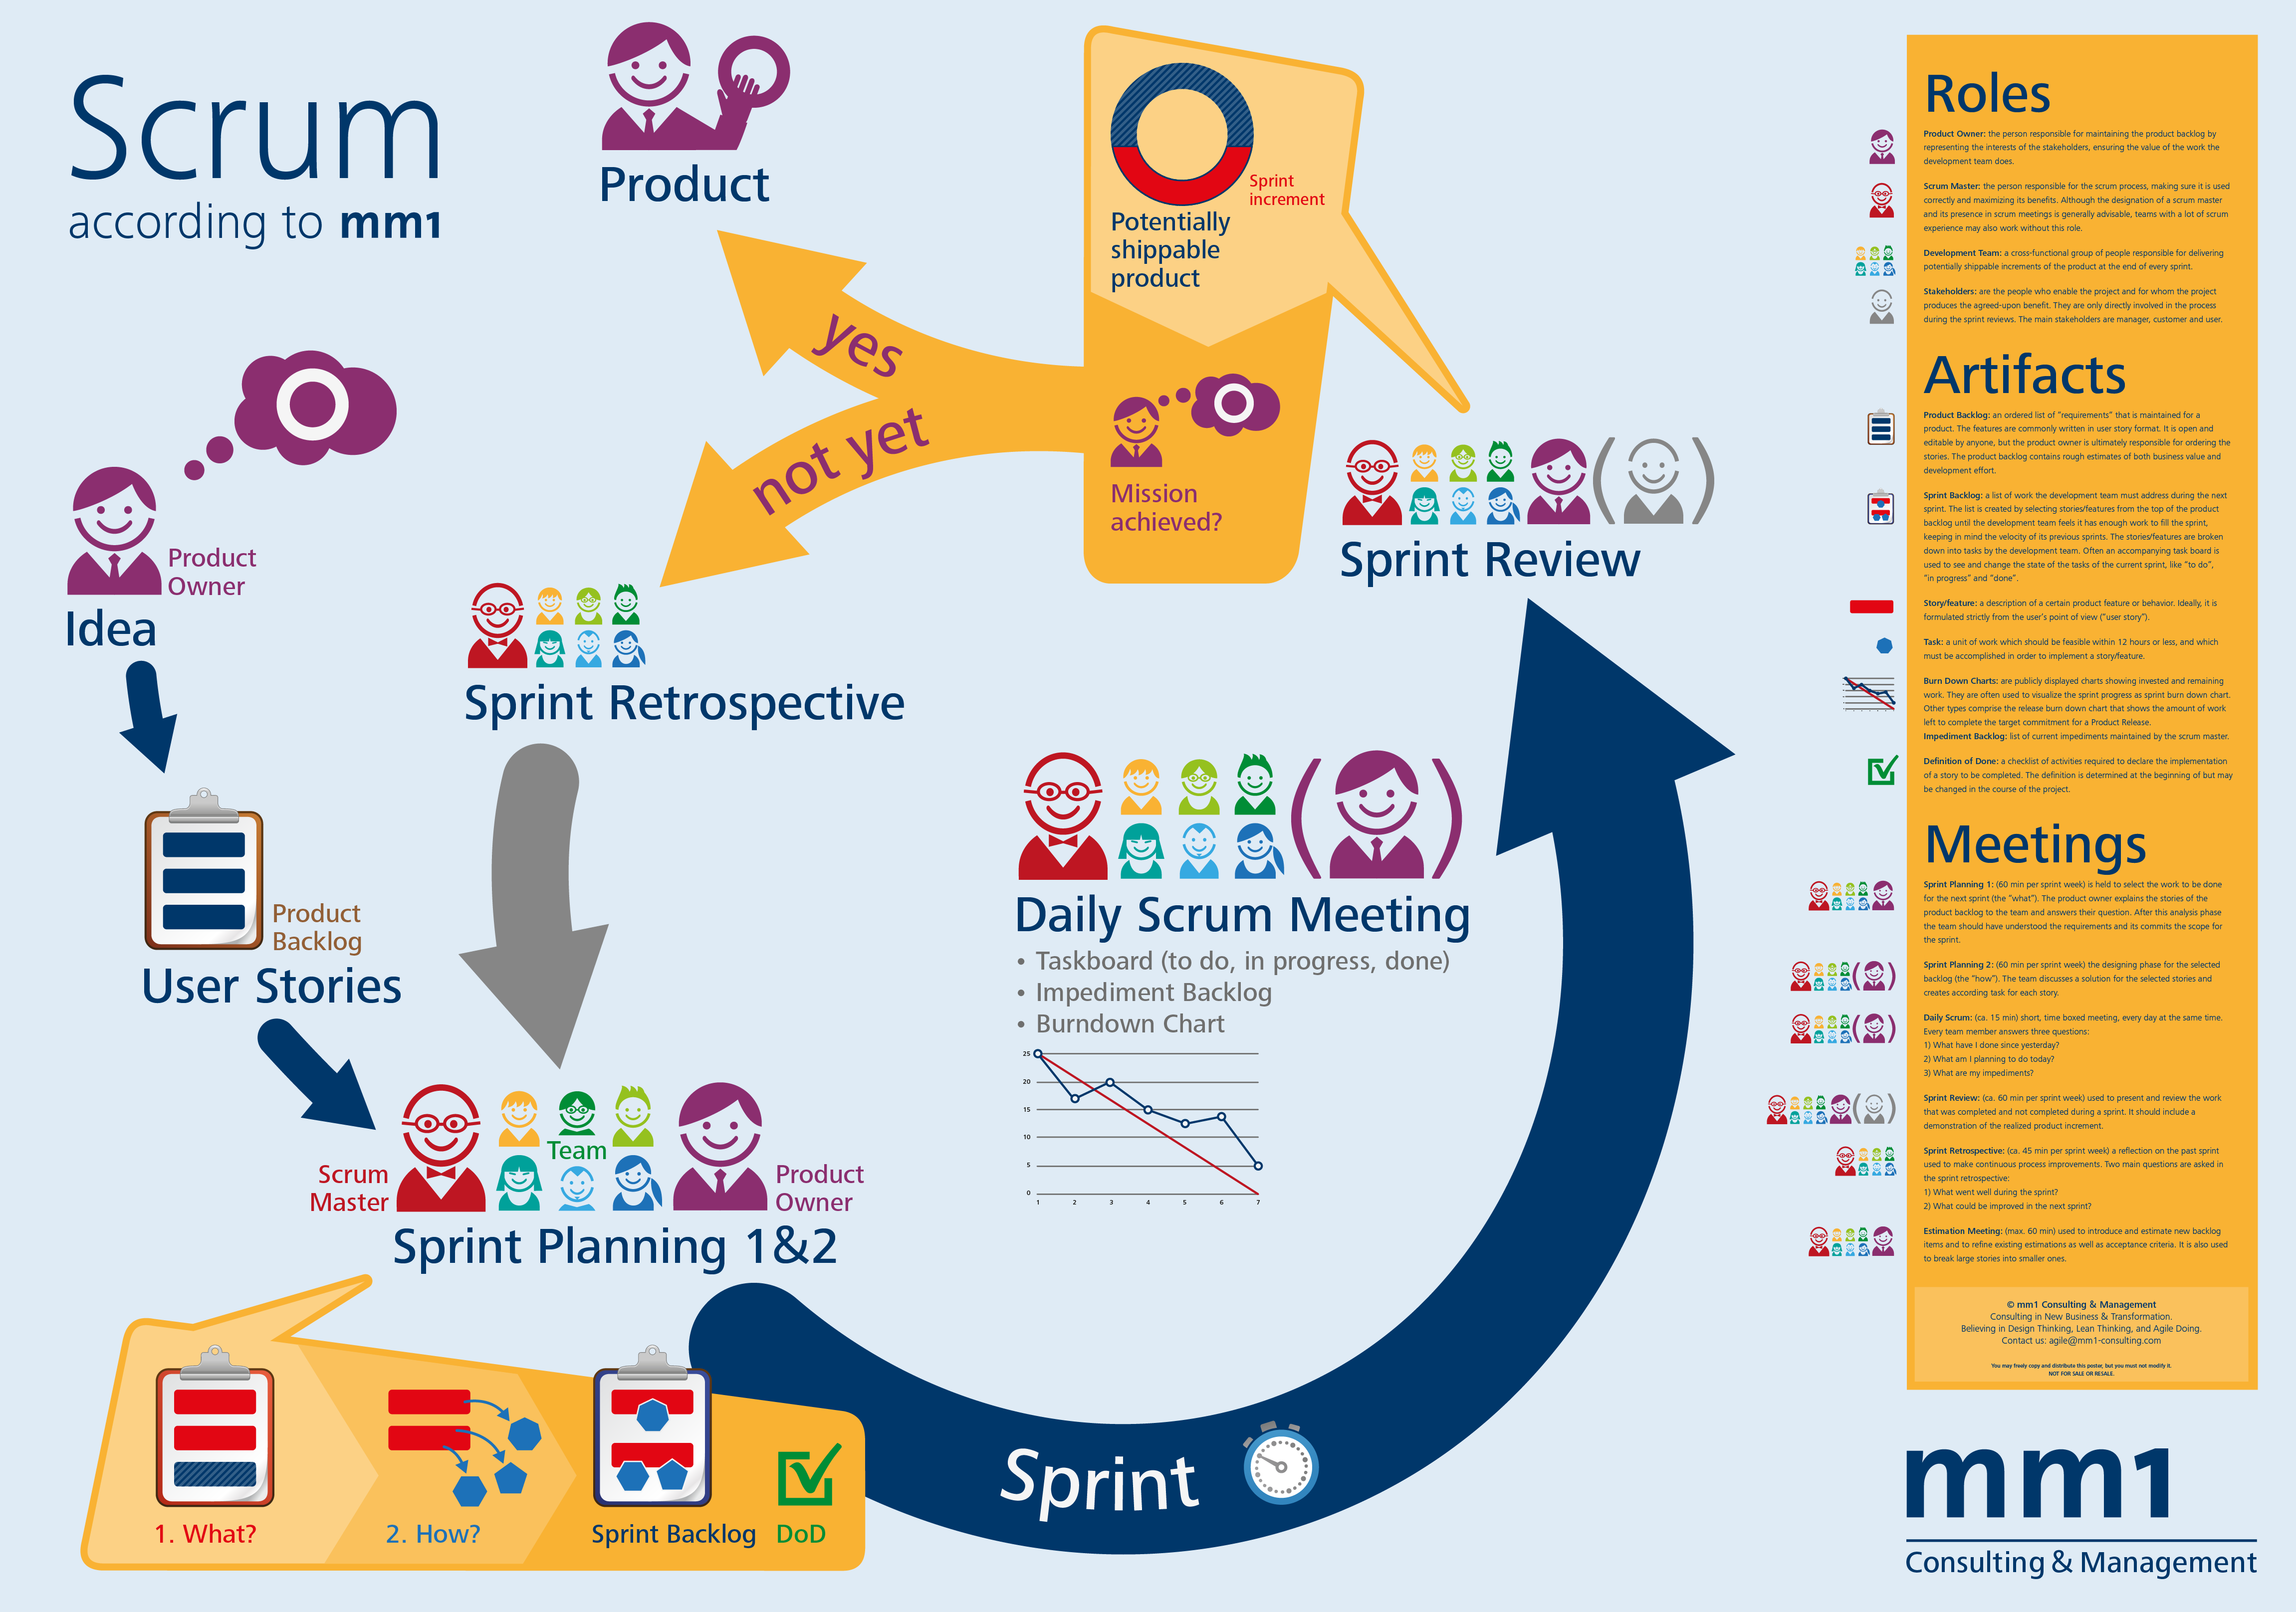 agile project management with scrum The most common question i get asked related to roles on agile teams is around what becomes of the traditional role of the project manager or the business analyst the question comes up because agile projects have only three roles: the scrum master, the product owner and the development team.